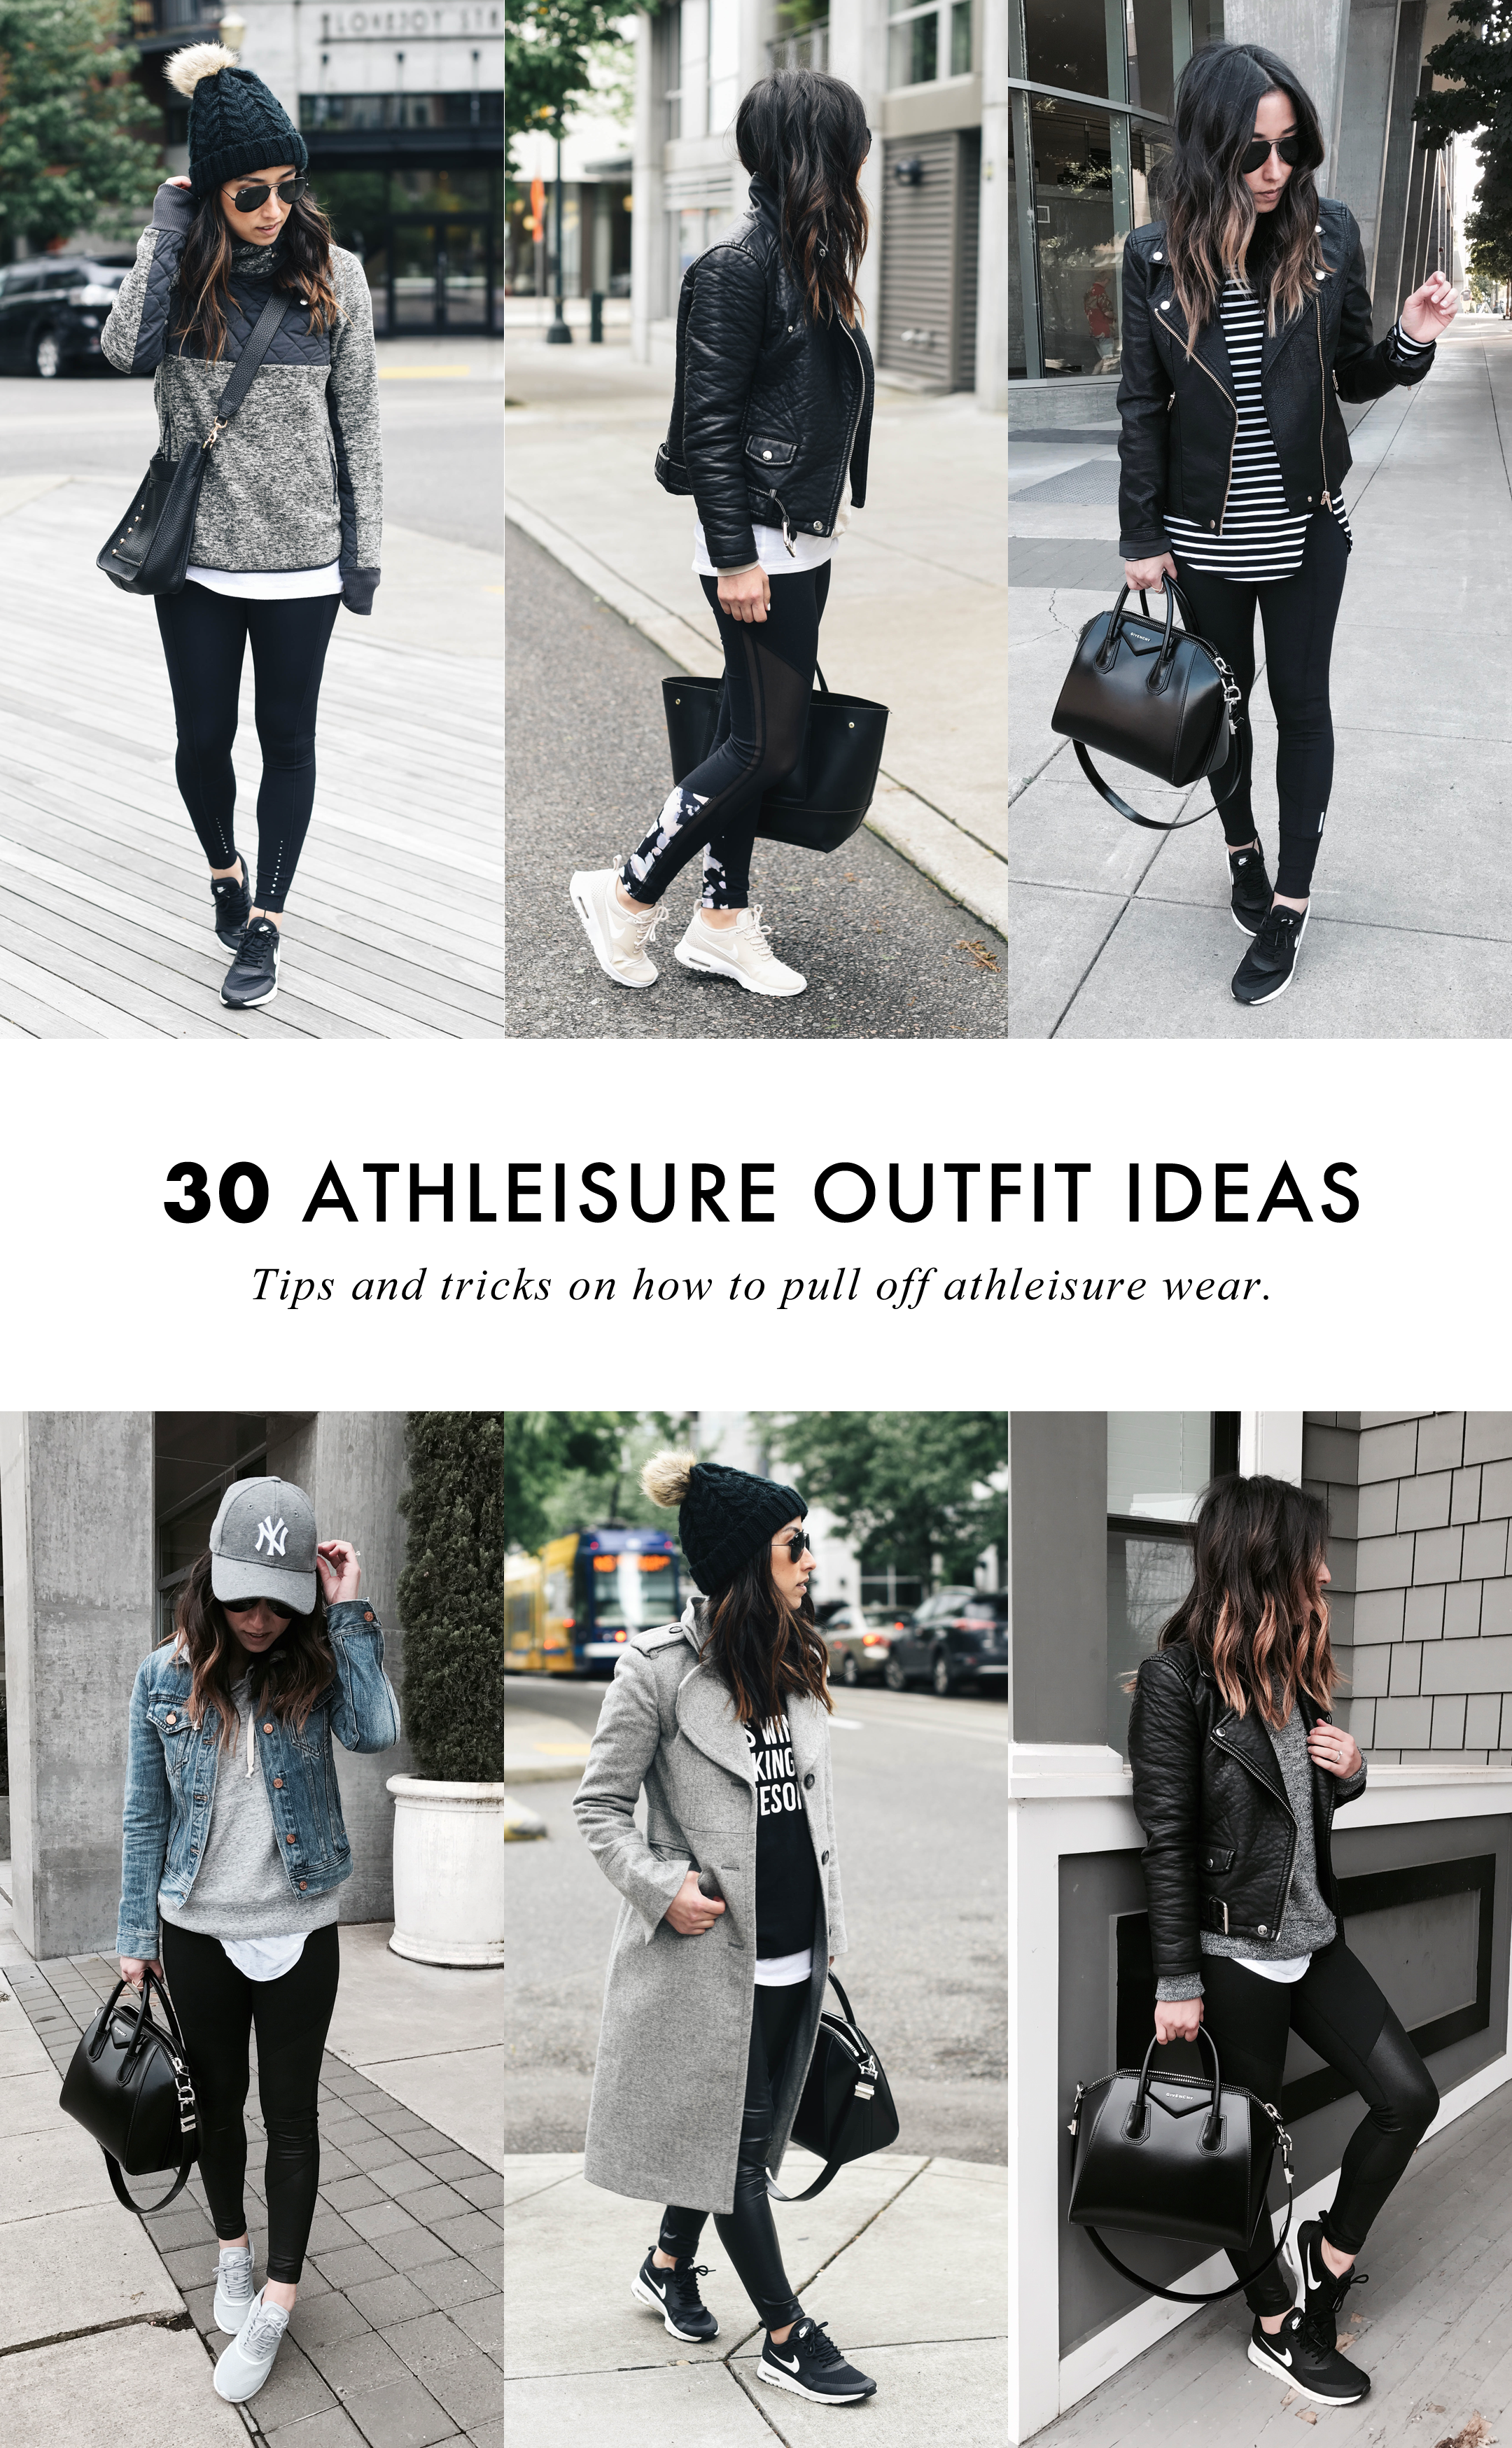 64ce9f7c How To Pull Off Athleisure Wear + 30 Outfit Ideas - Crystalin Marie